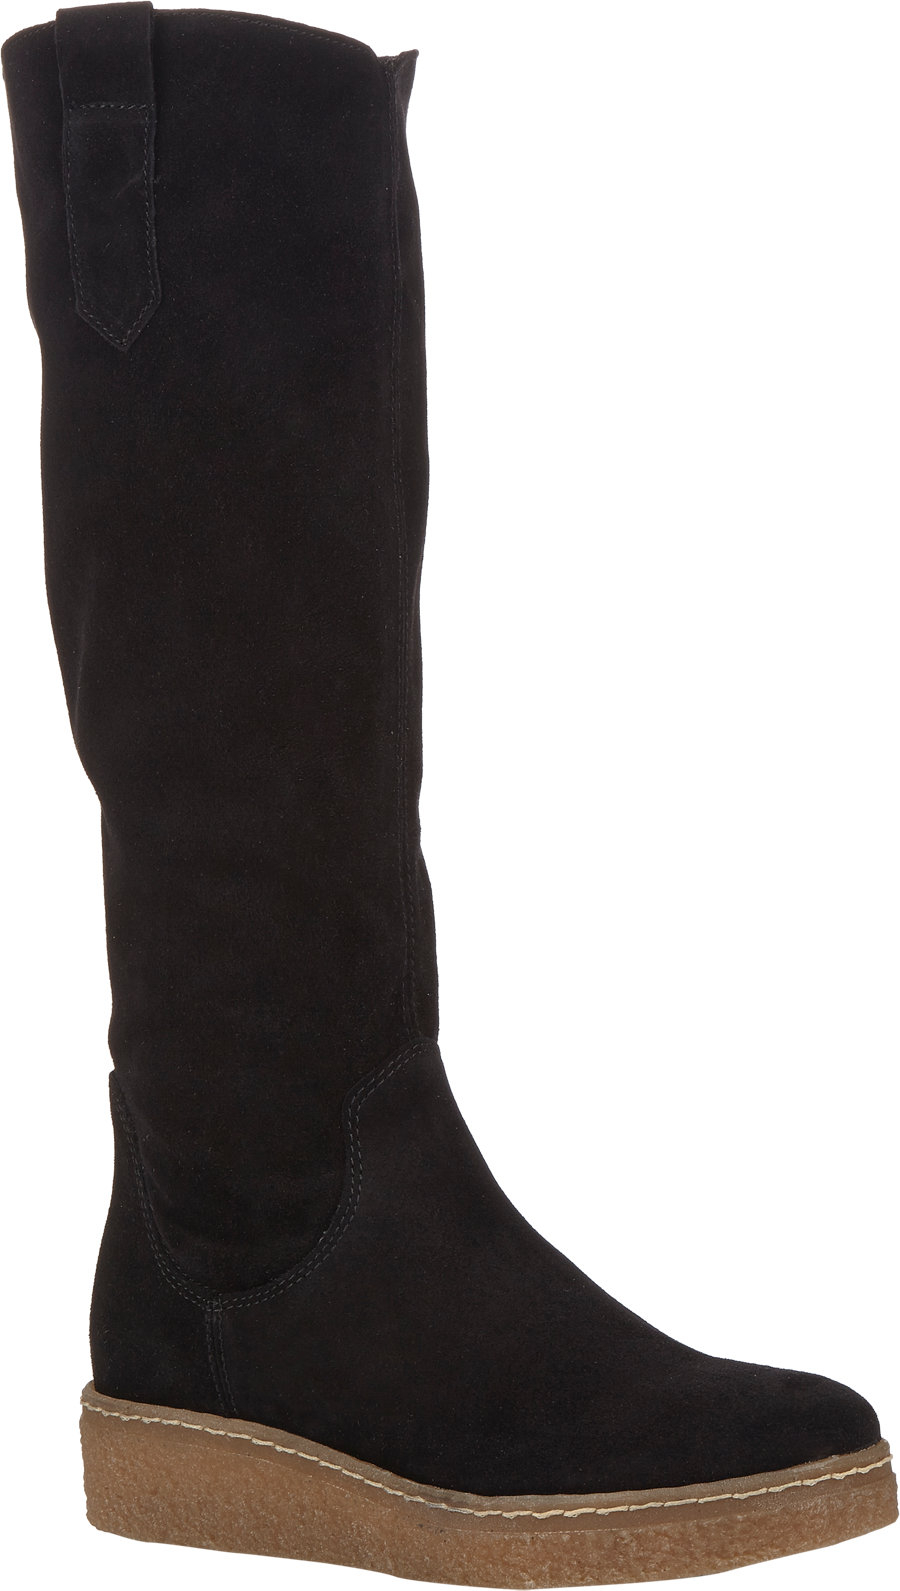 barneys new york pull on platform wedge boots in black lyst